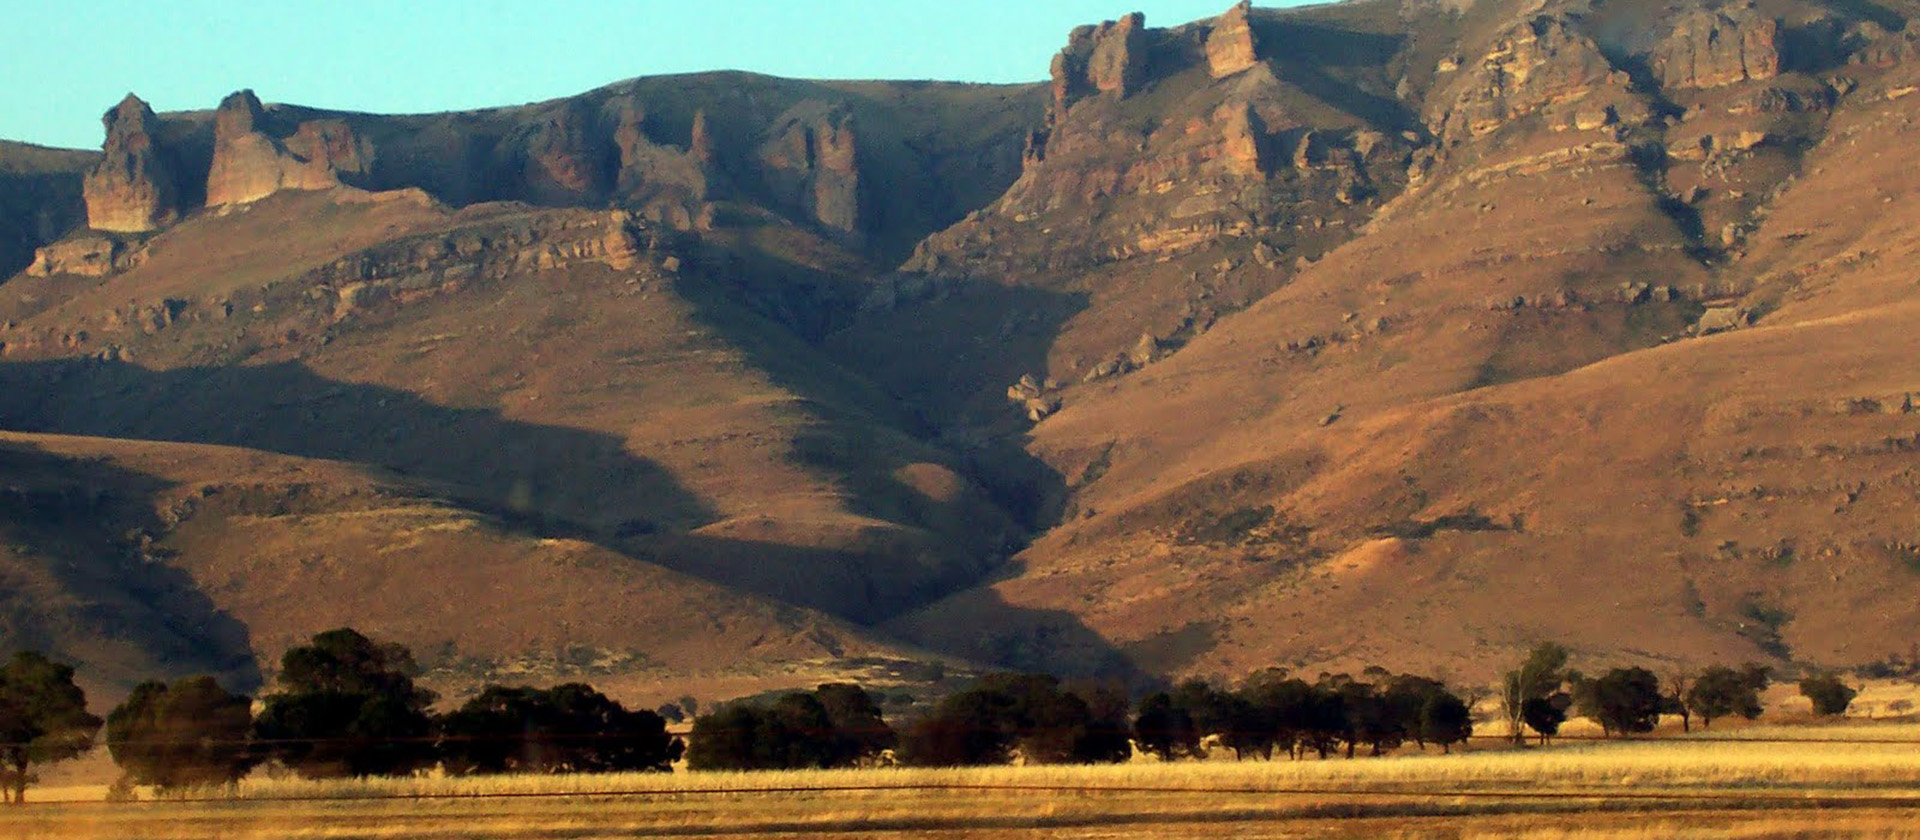 Eastern Cape Exterior Views